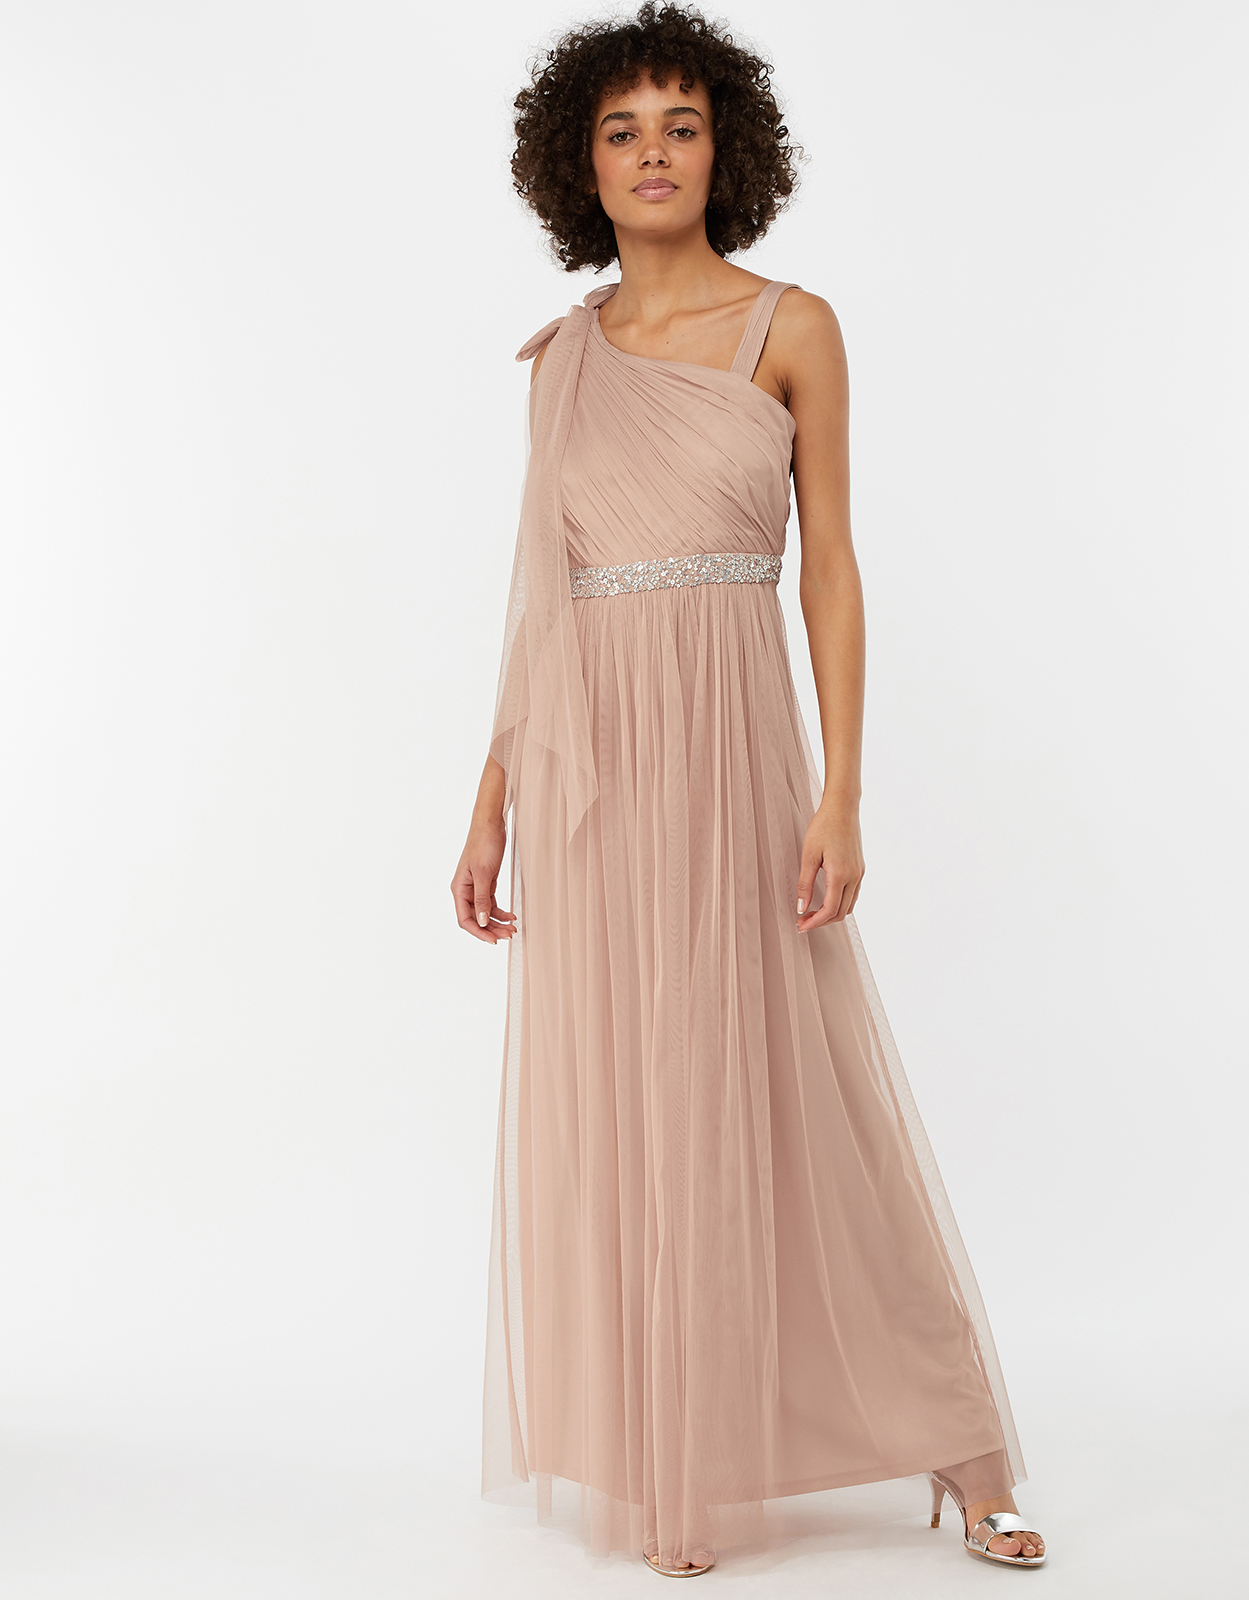 Monsoon Anouck One Shoulder Maxi Bridesmaid Dress